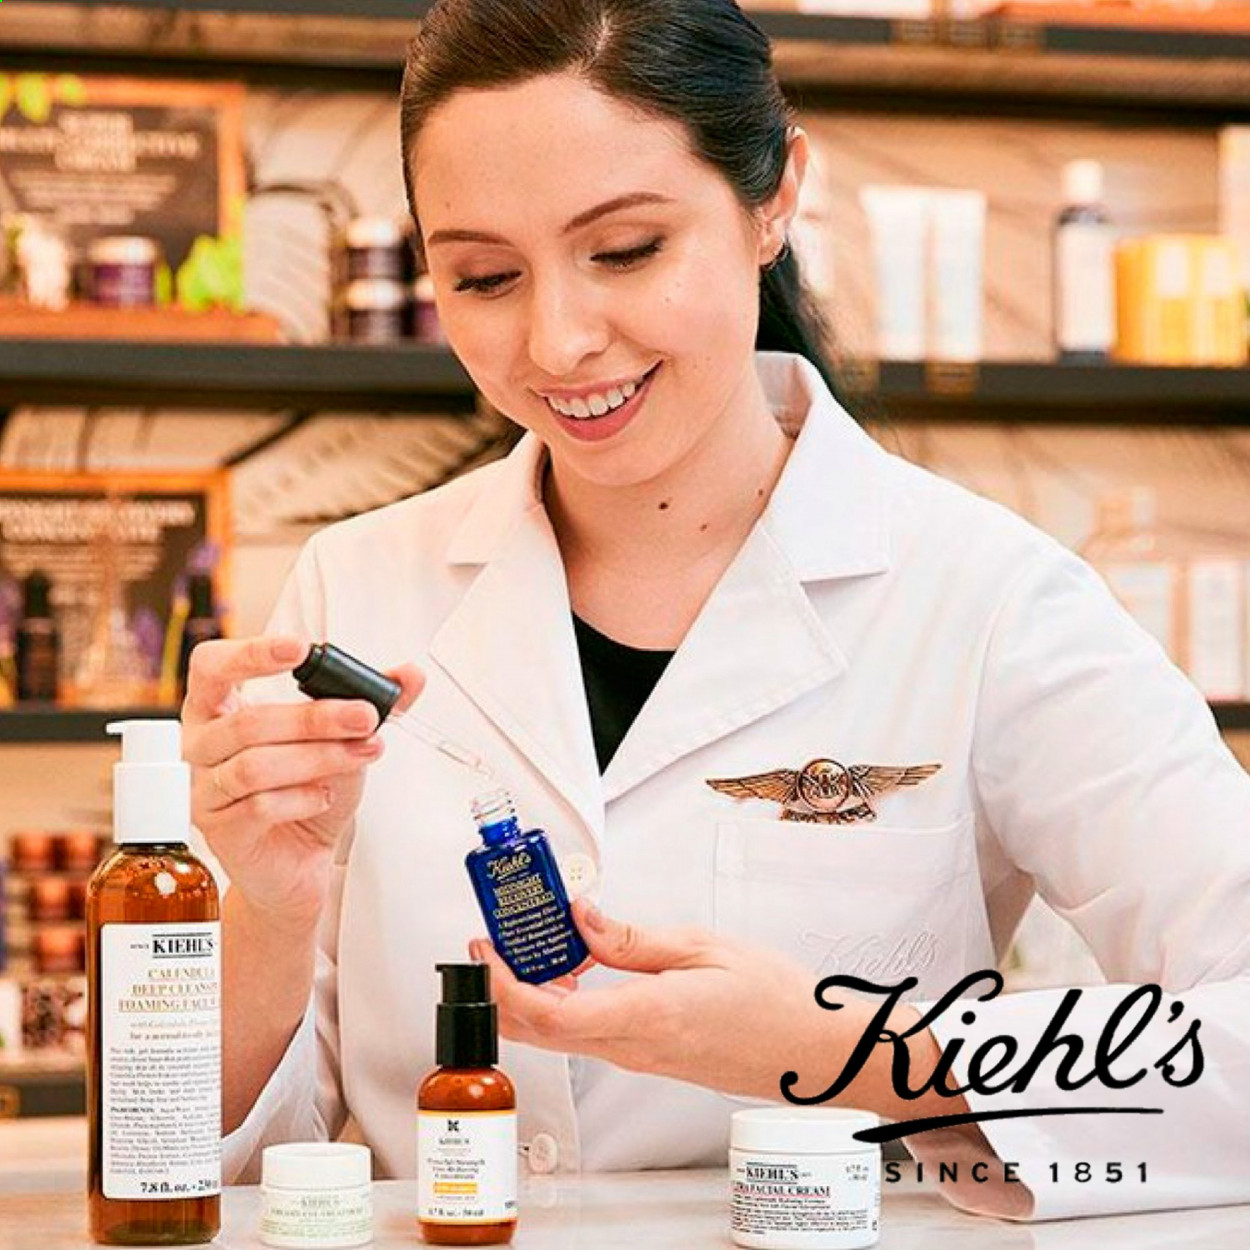 Kiehl's offer . Page 1.